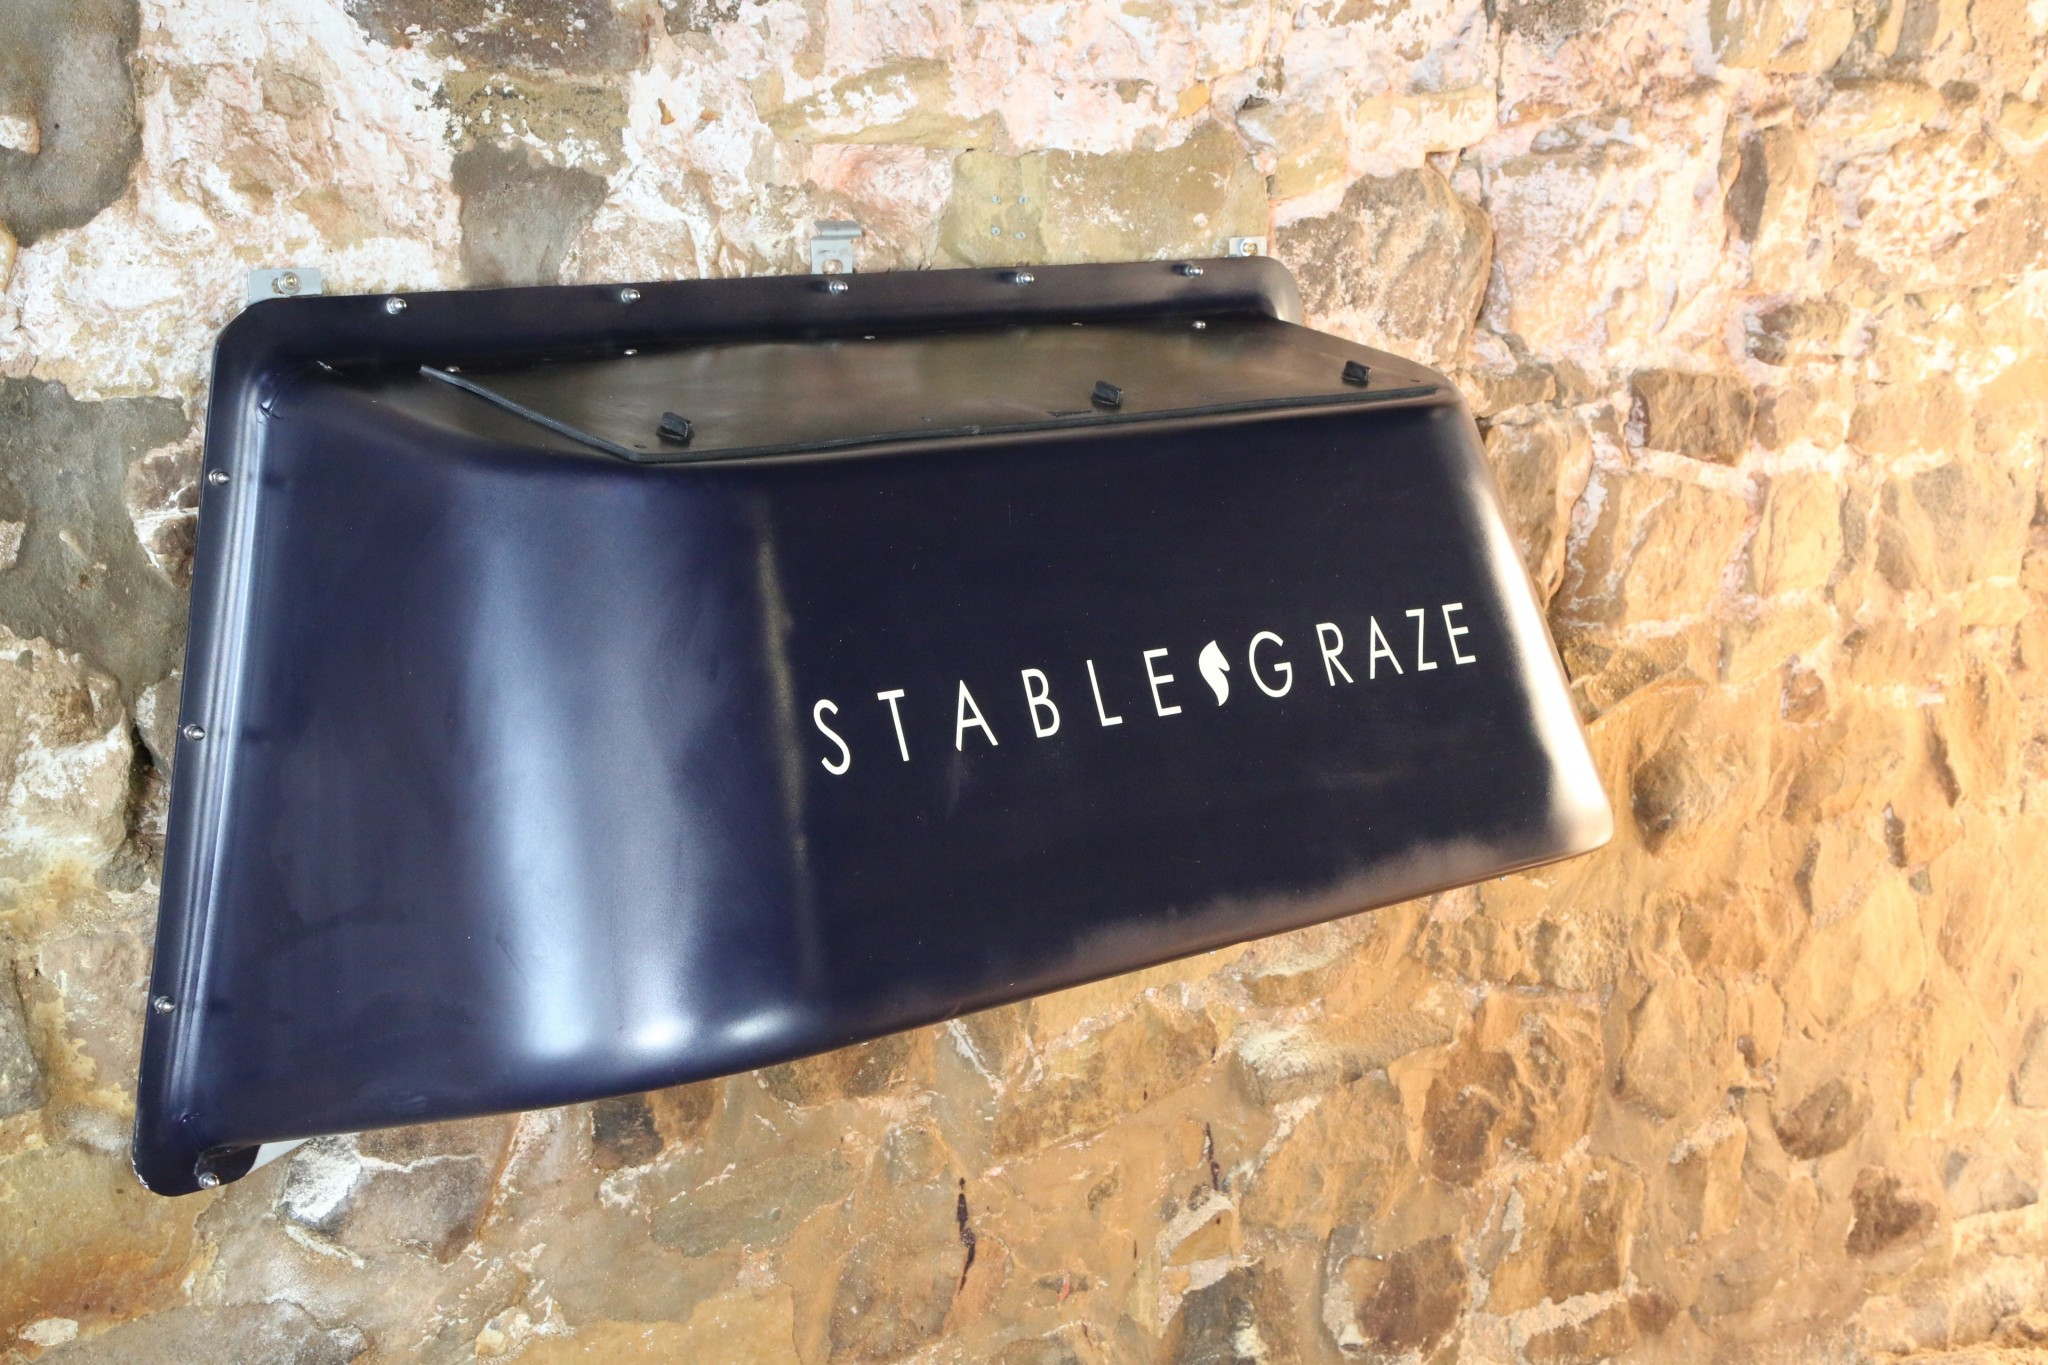 Stablegraze1 - Stablegraze is launched at BETA International